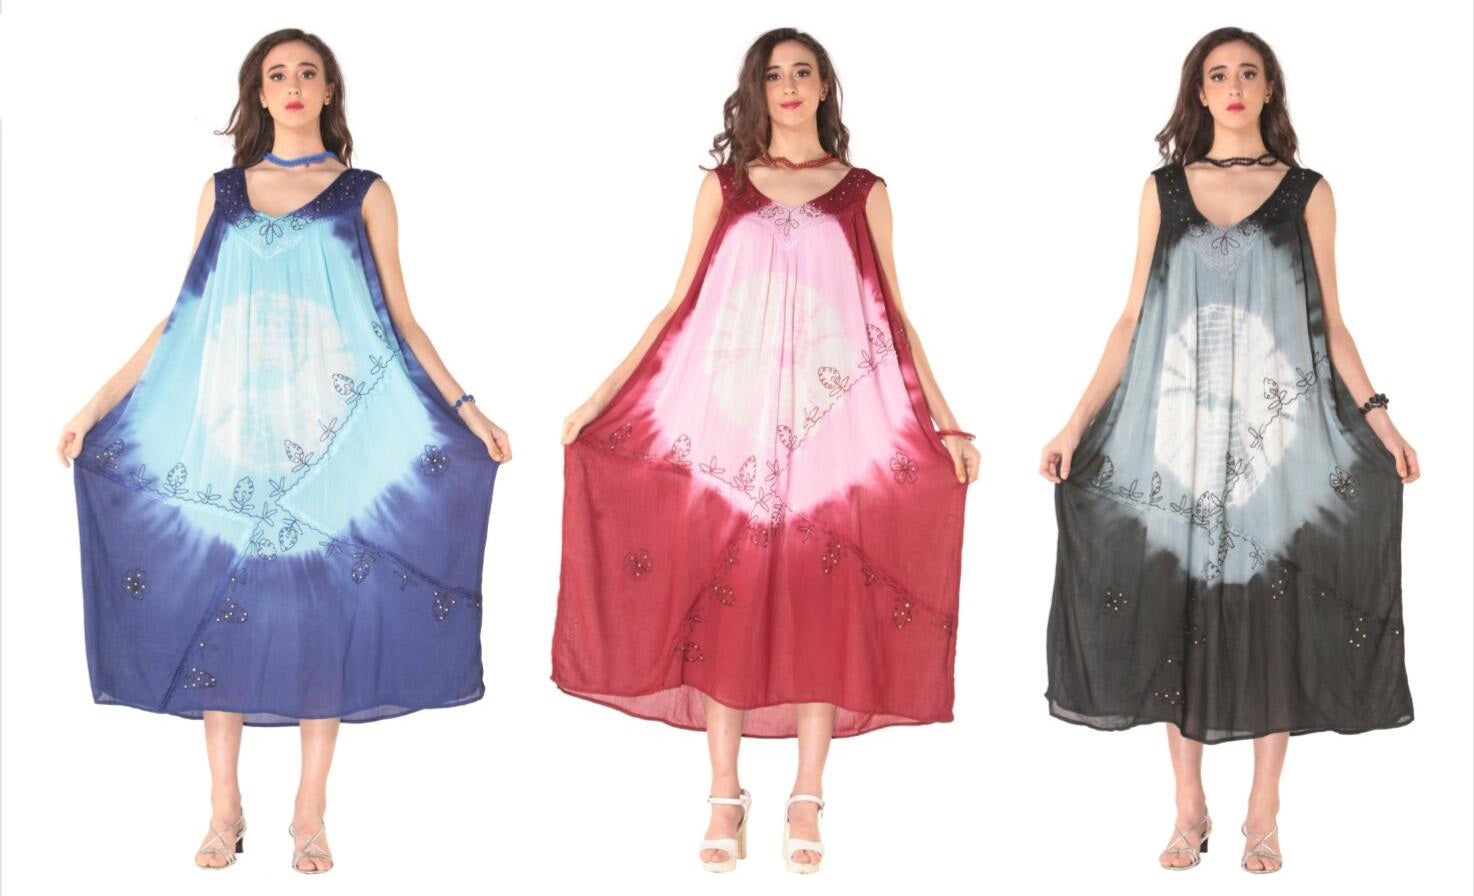 Wholesale Clothing Dresses Rayon Maxi Dress- Tie Dye 140gms 36/Case (S-XL) 3C NWG06